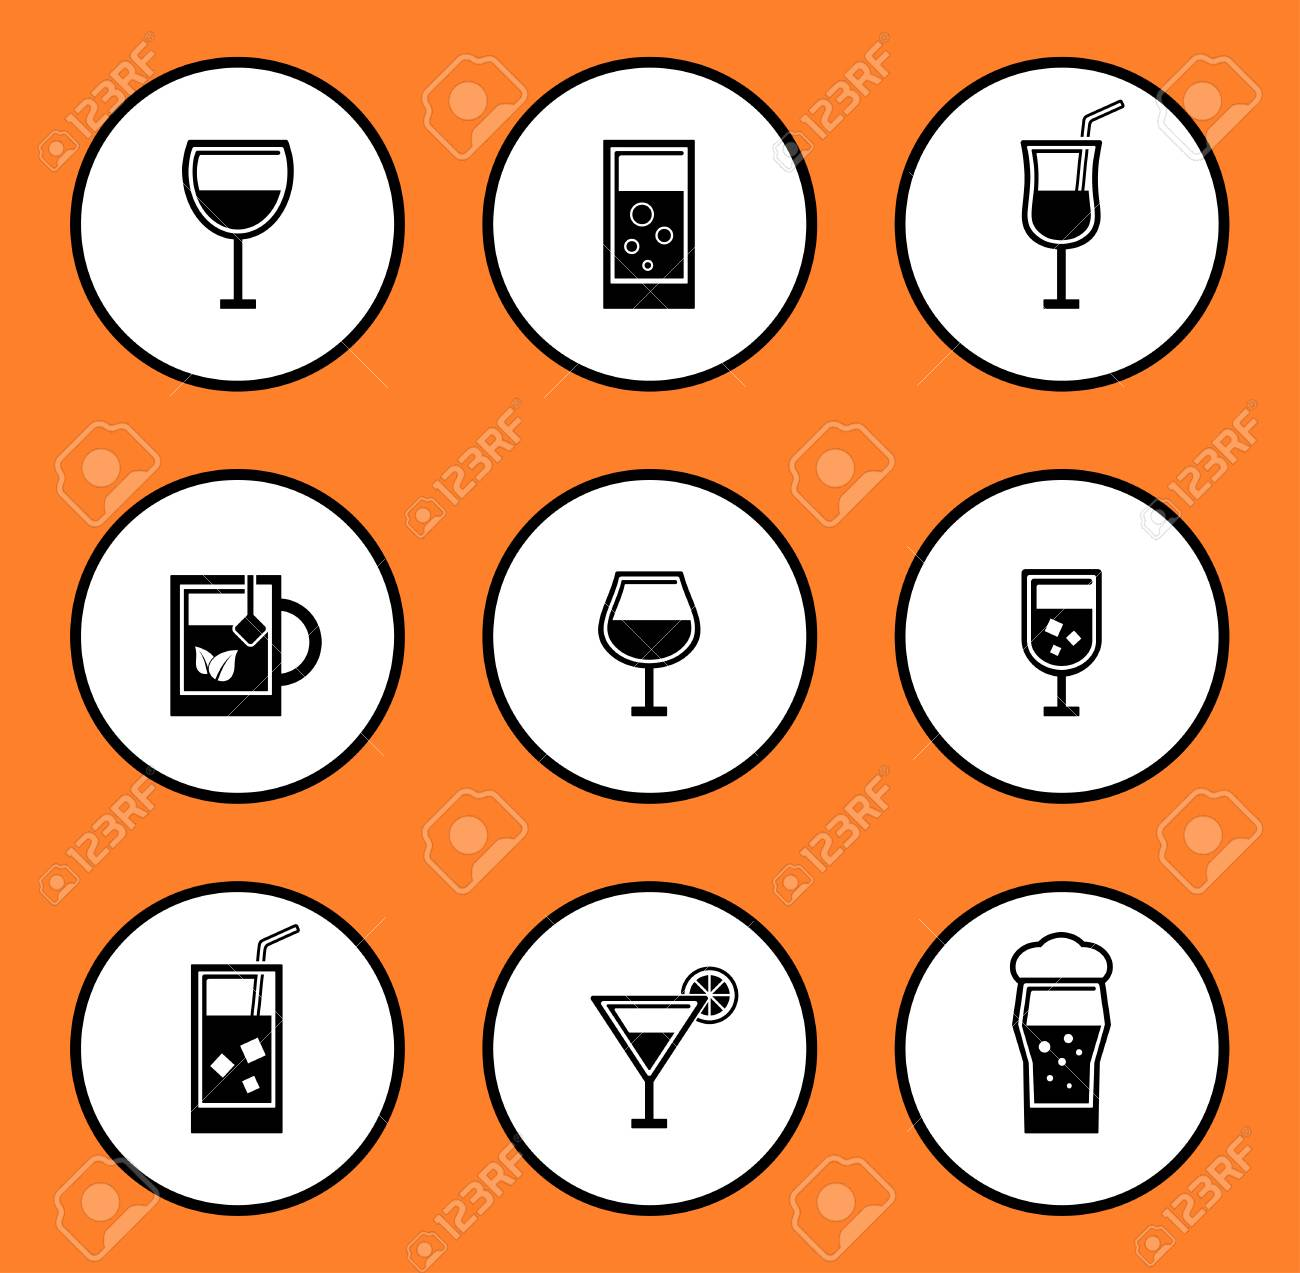 black glassful icon set for water or alcohol beverage on white background - 51010761